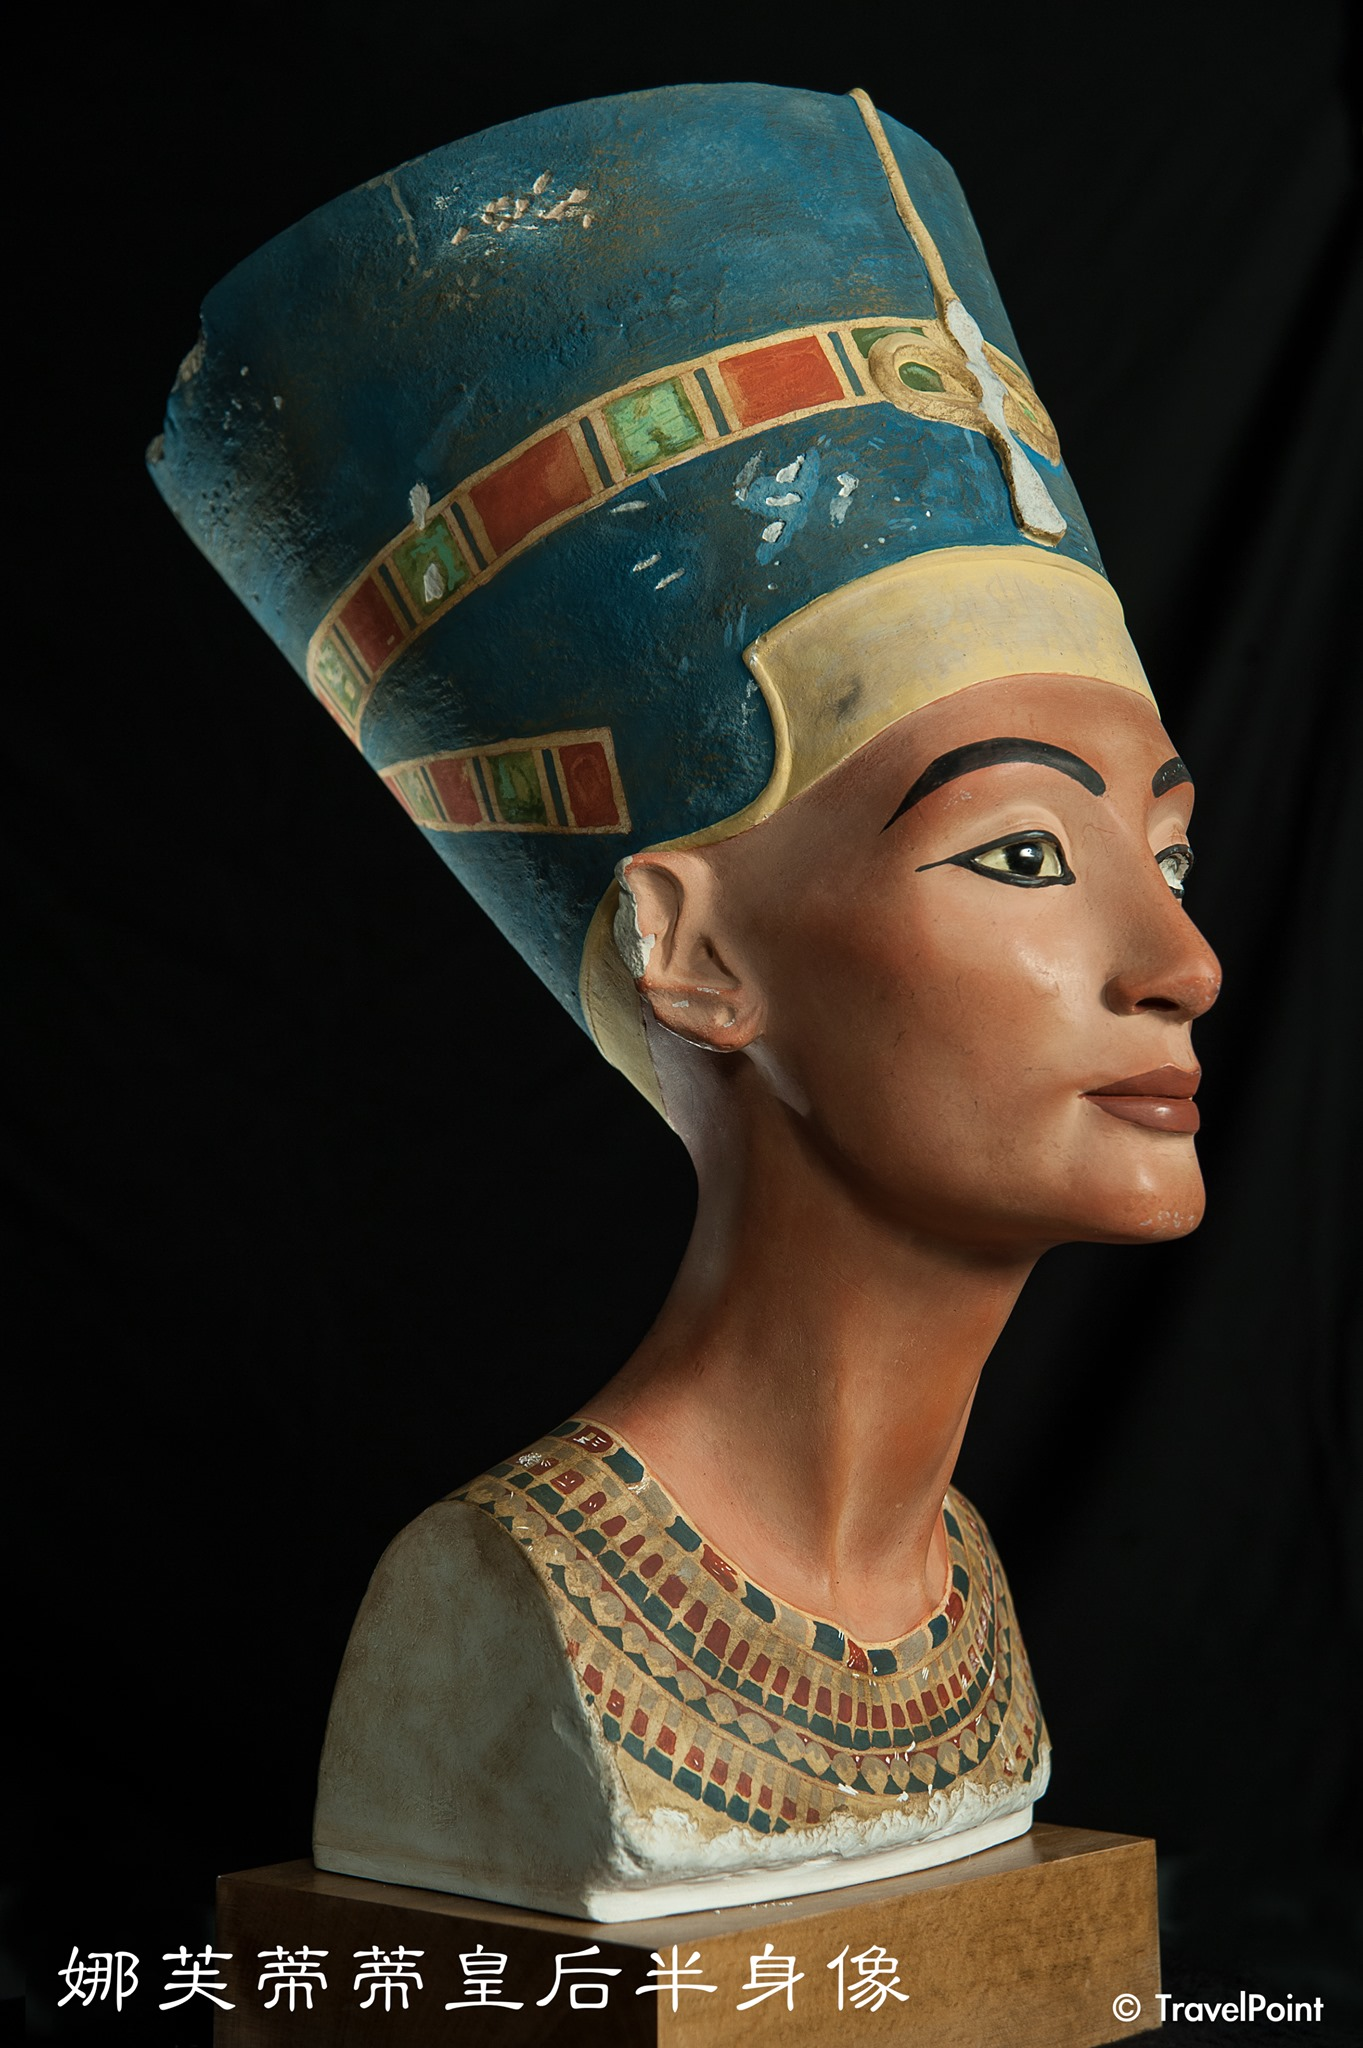 20200117-20200405 Tutankhamun—The Golden Pharaoh